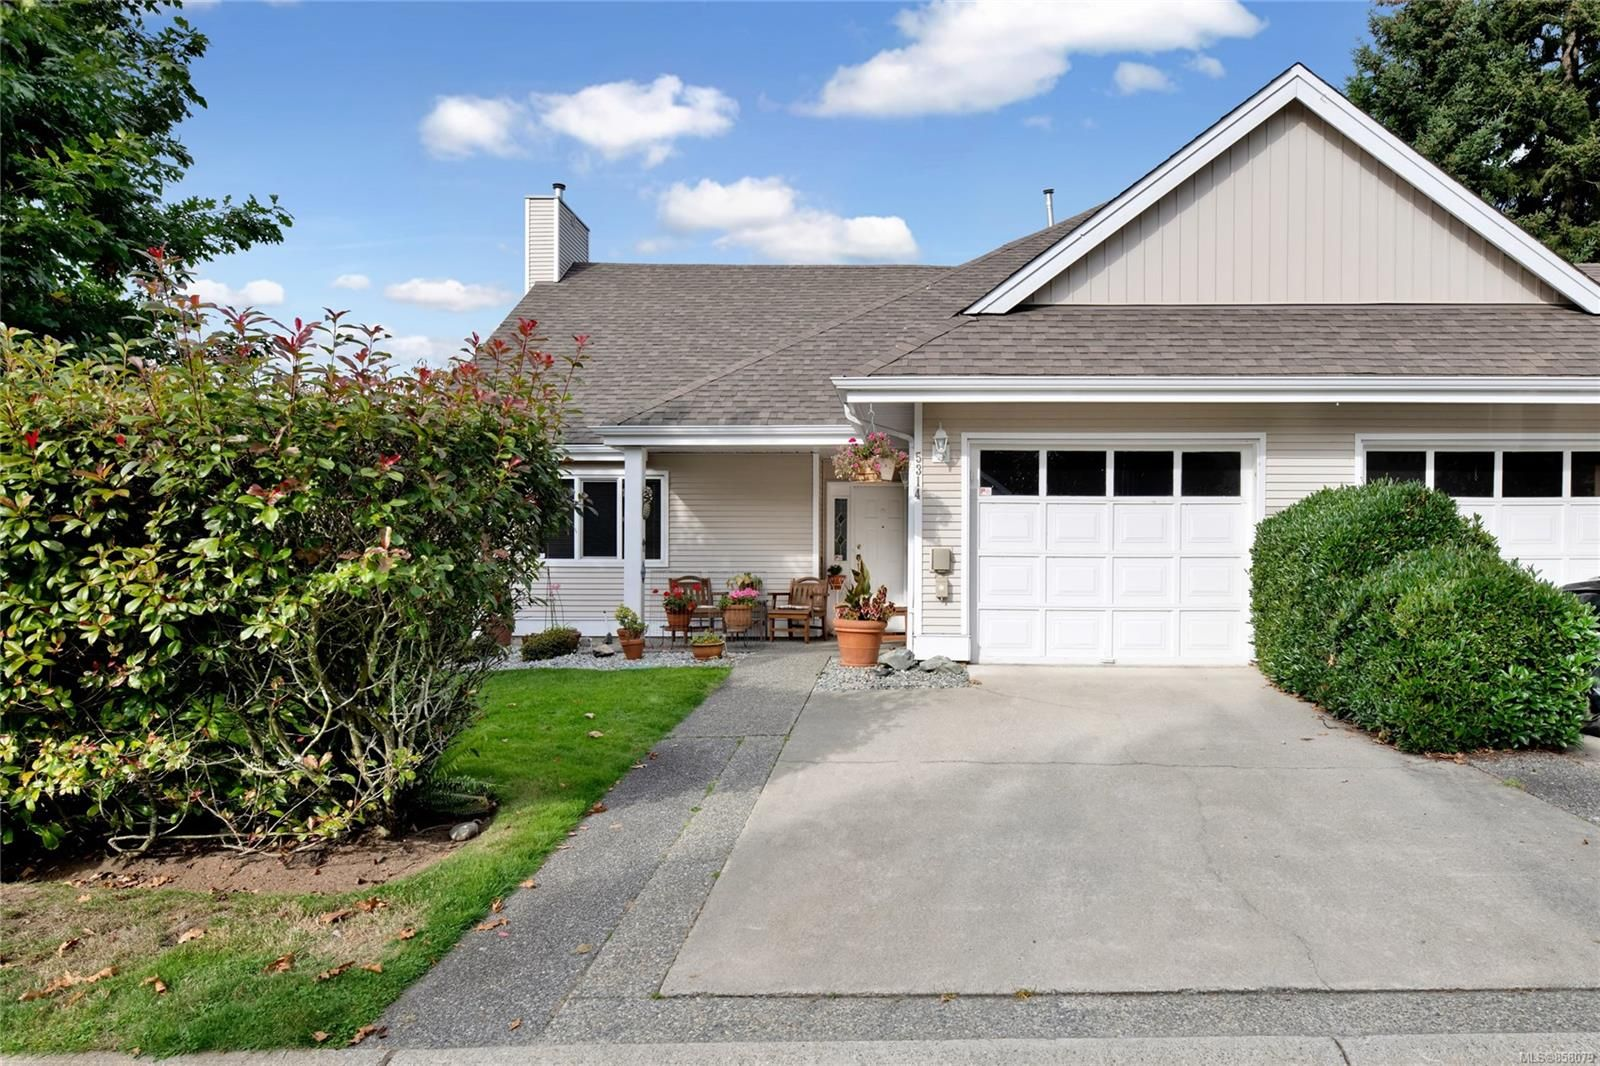 Main Photo: 5314 Arbour Lane in : Na North Nanaimo Row/Townhouse for sale (Nanaimo)  : MLS®# 858079